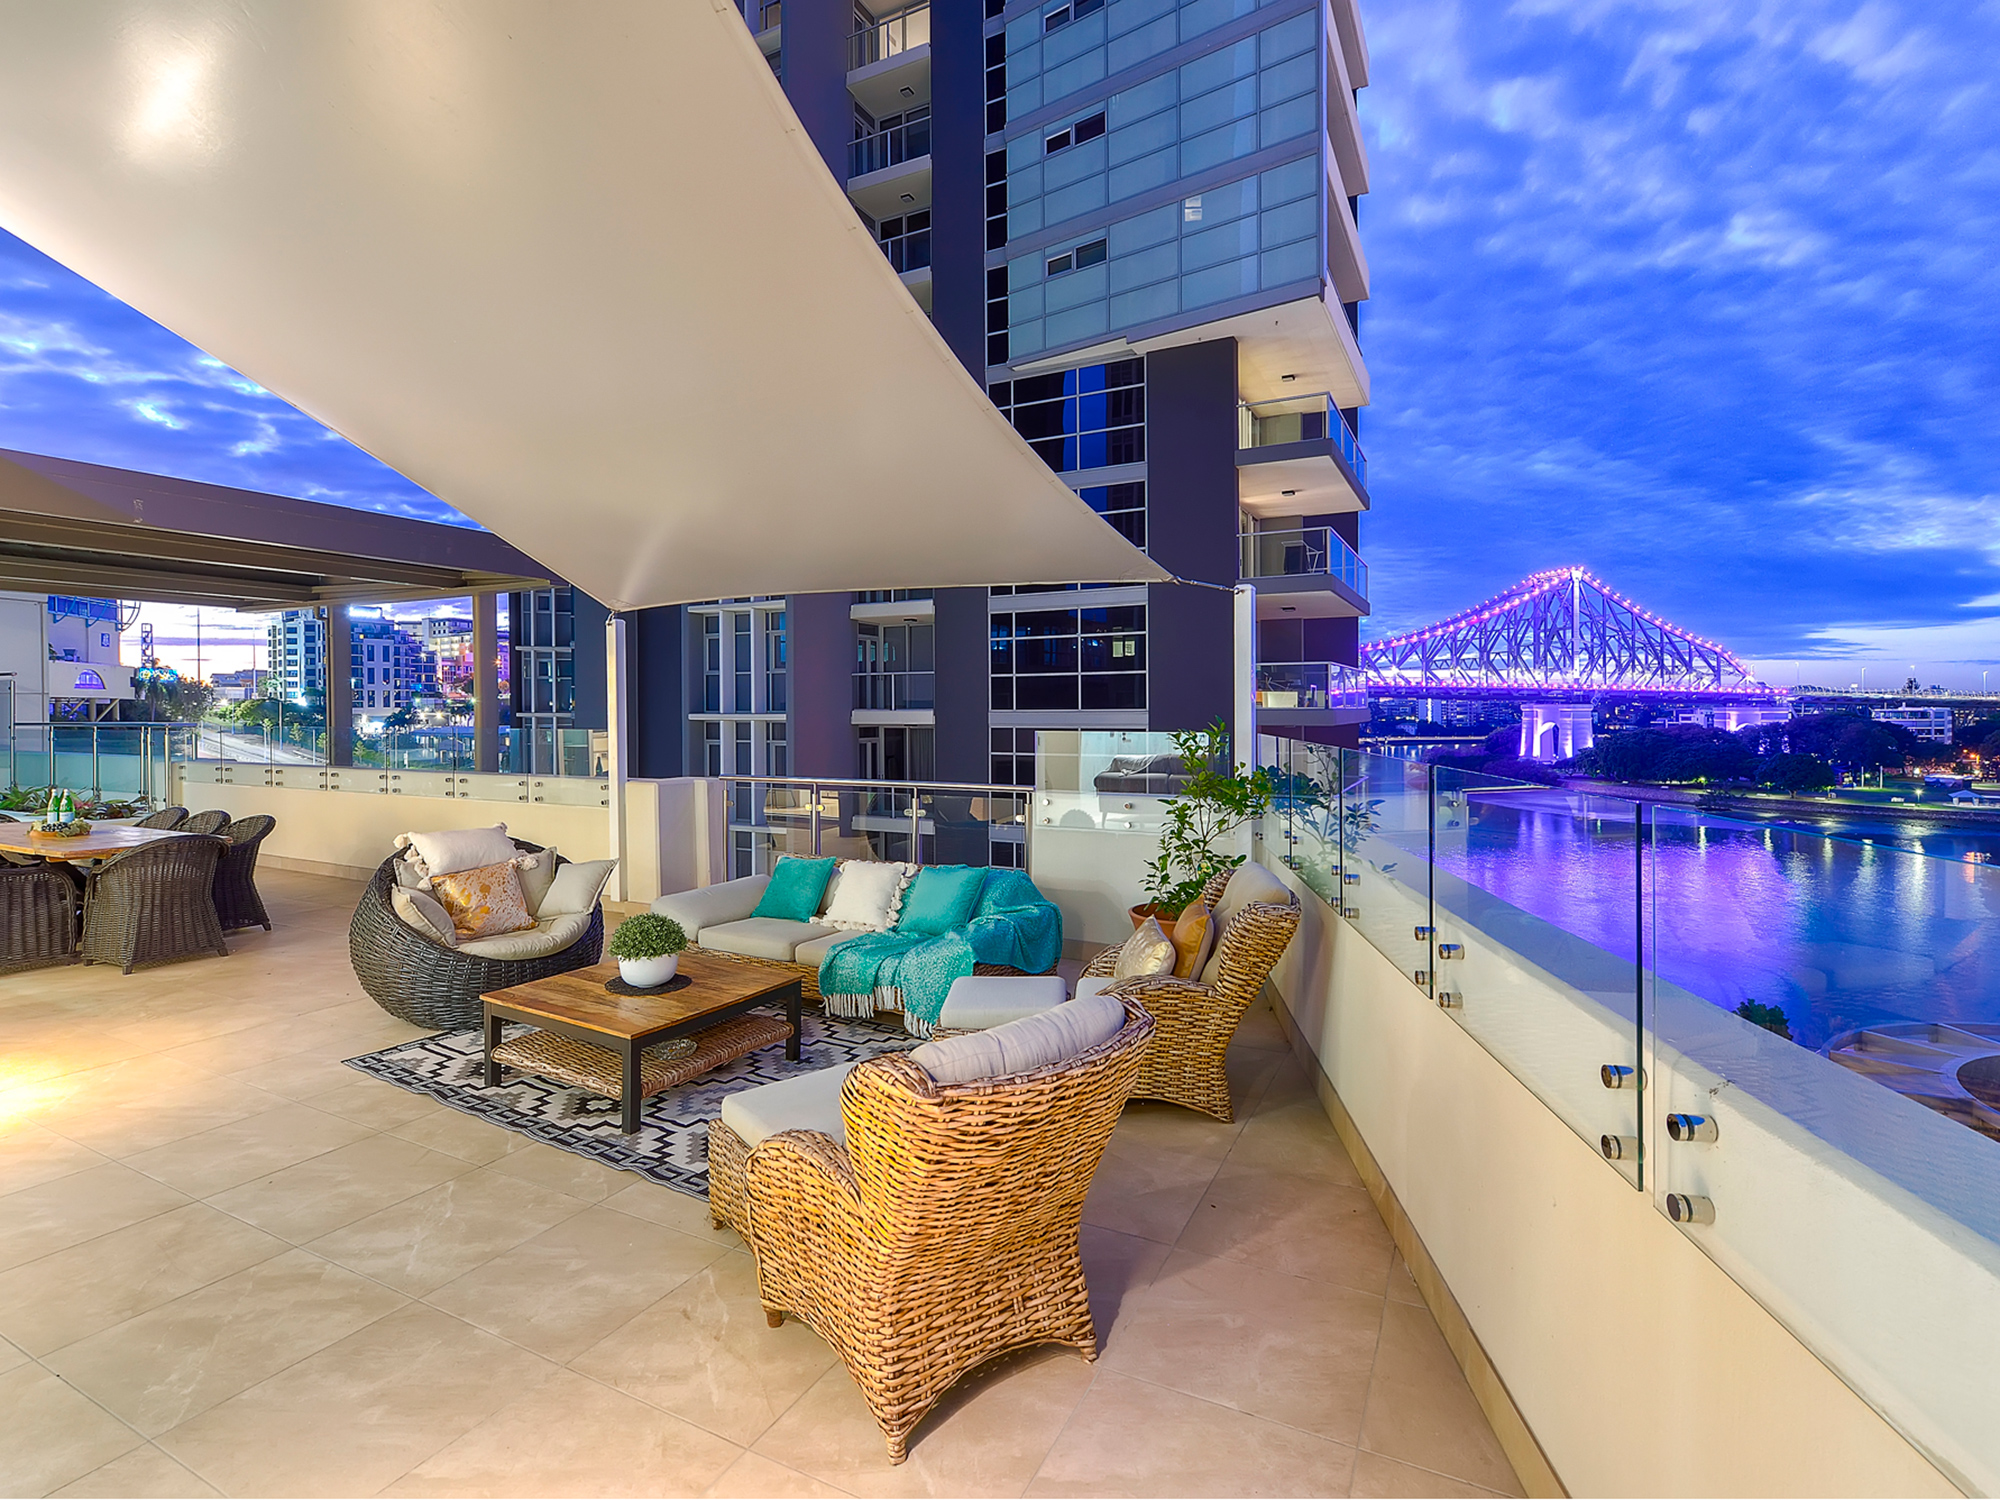 403483 Adelaide Street, Brisbane City Qld 4000  Apartment For